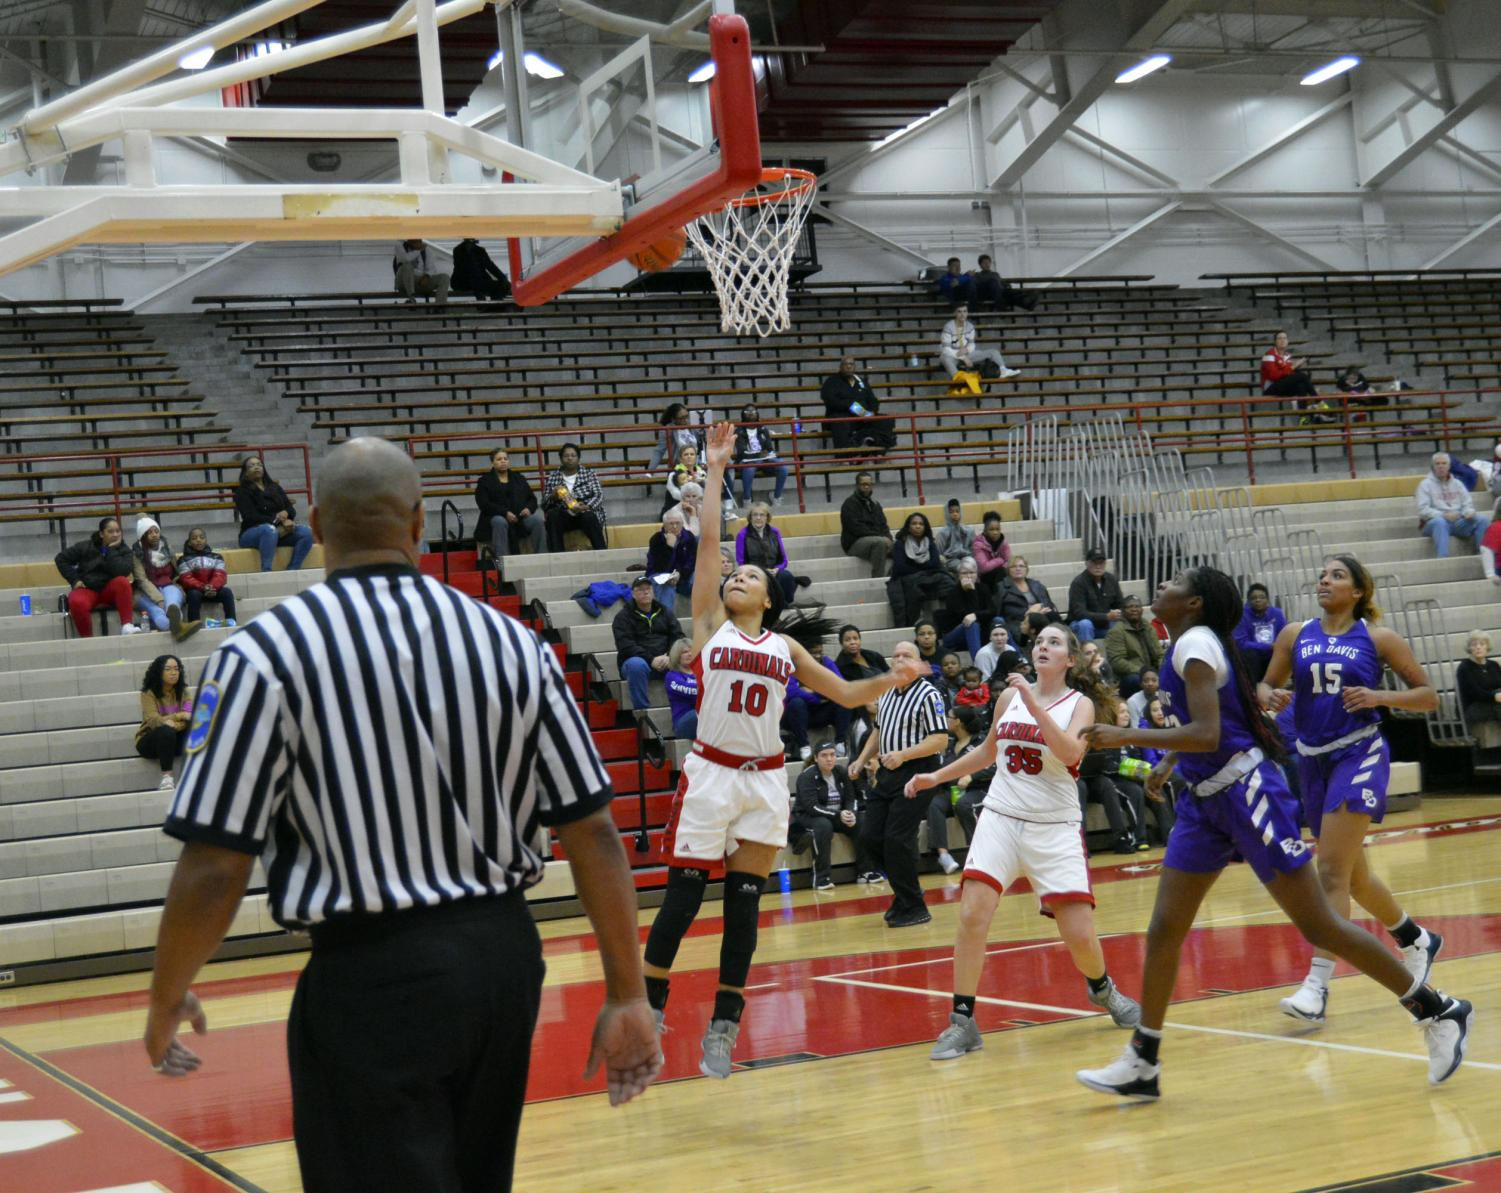 Junior Kyra Duncan shoots a layup at the girls varsity home game against Ben Davis on Thursday, Dec. 13. The SHS girls lost 37 to 61.